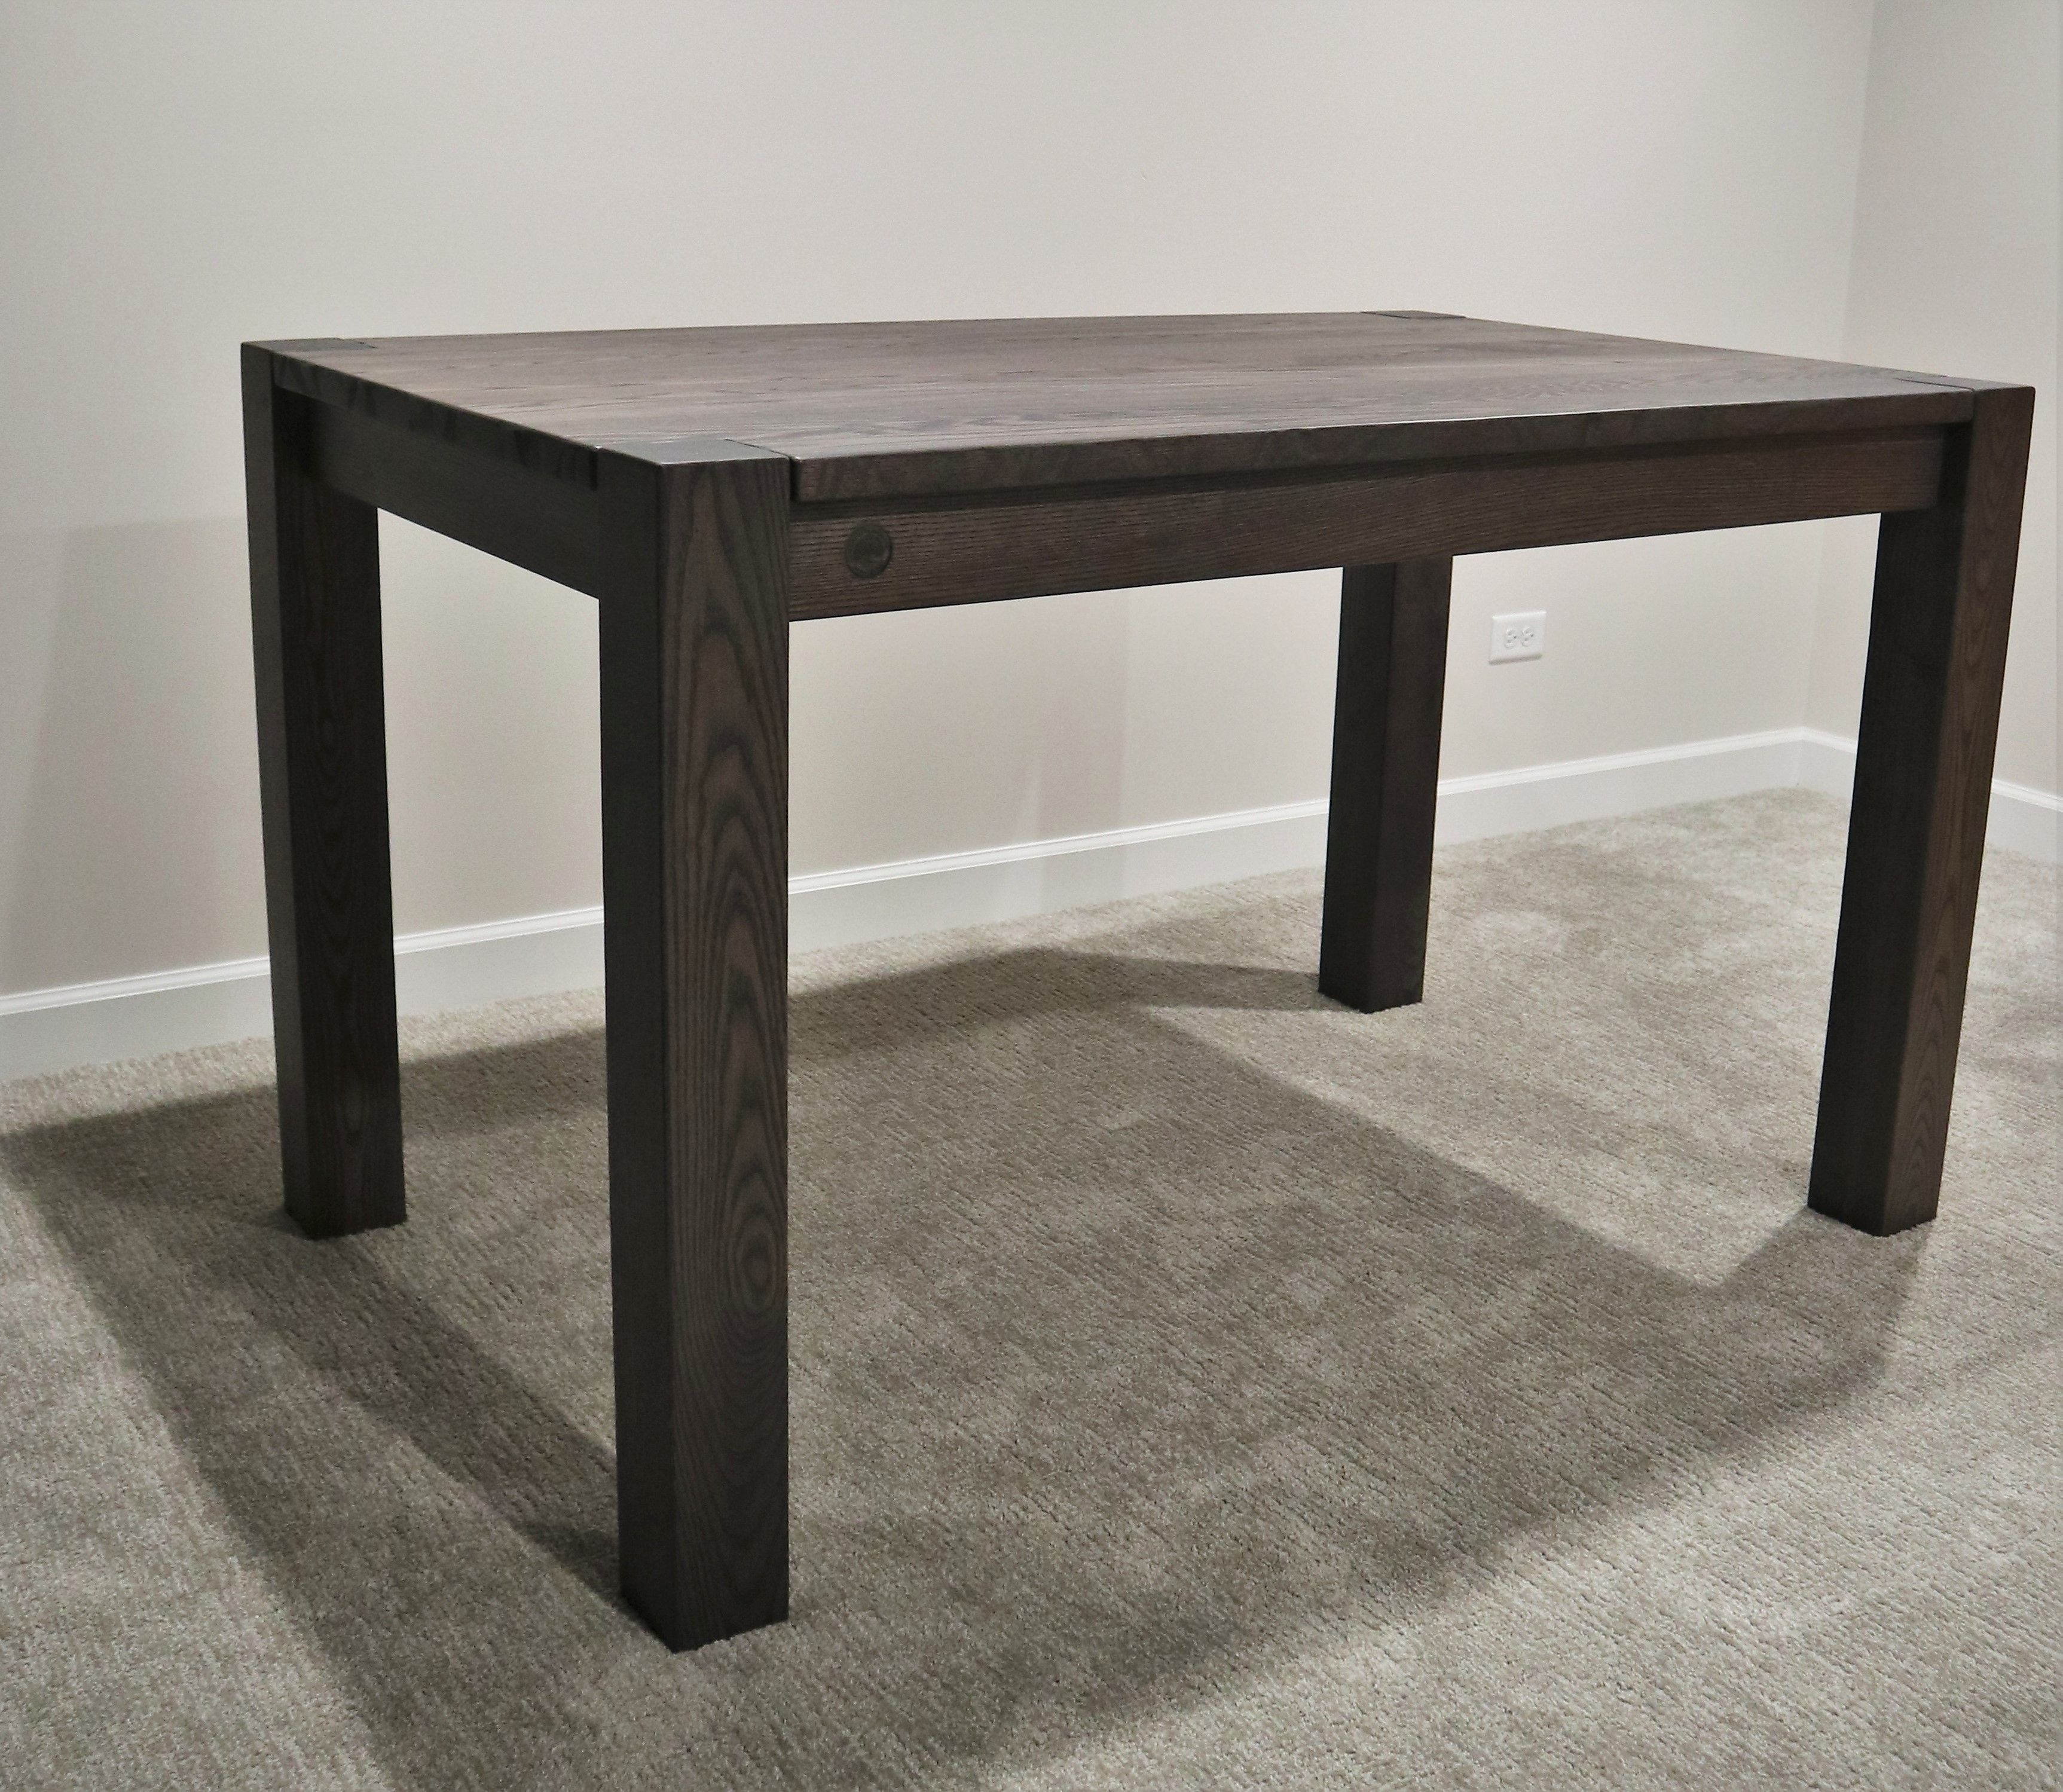 The Average Height For Our Custom Tables Is Around 30 Inches Here